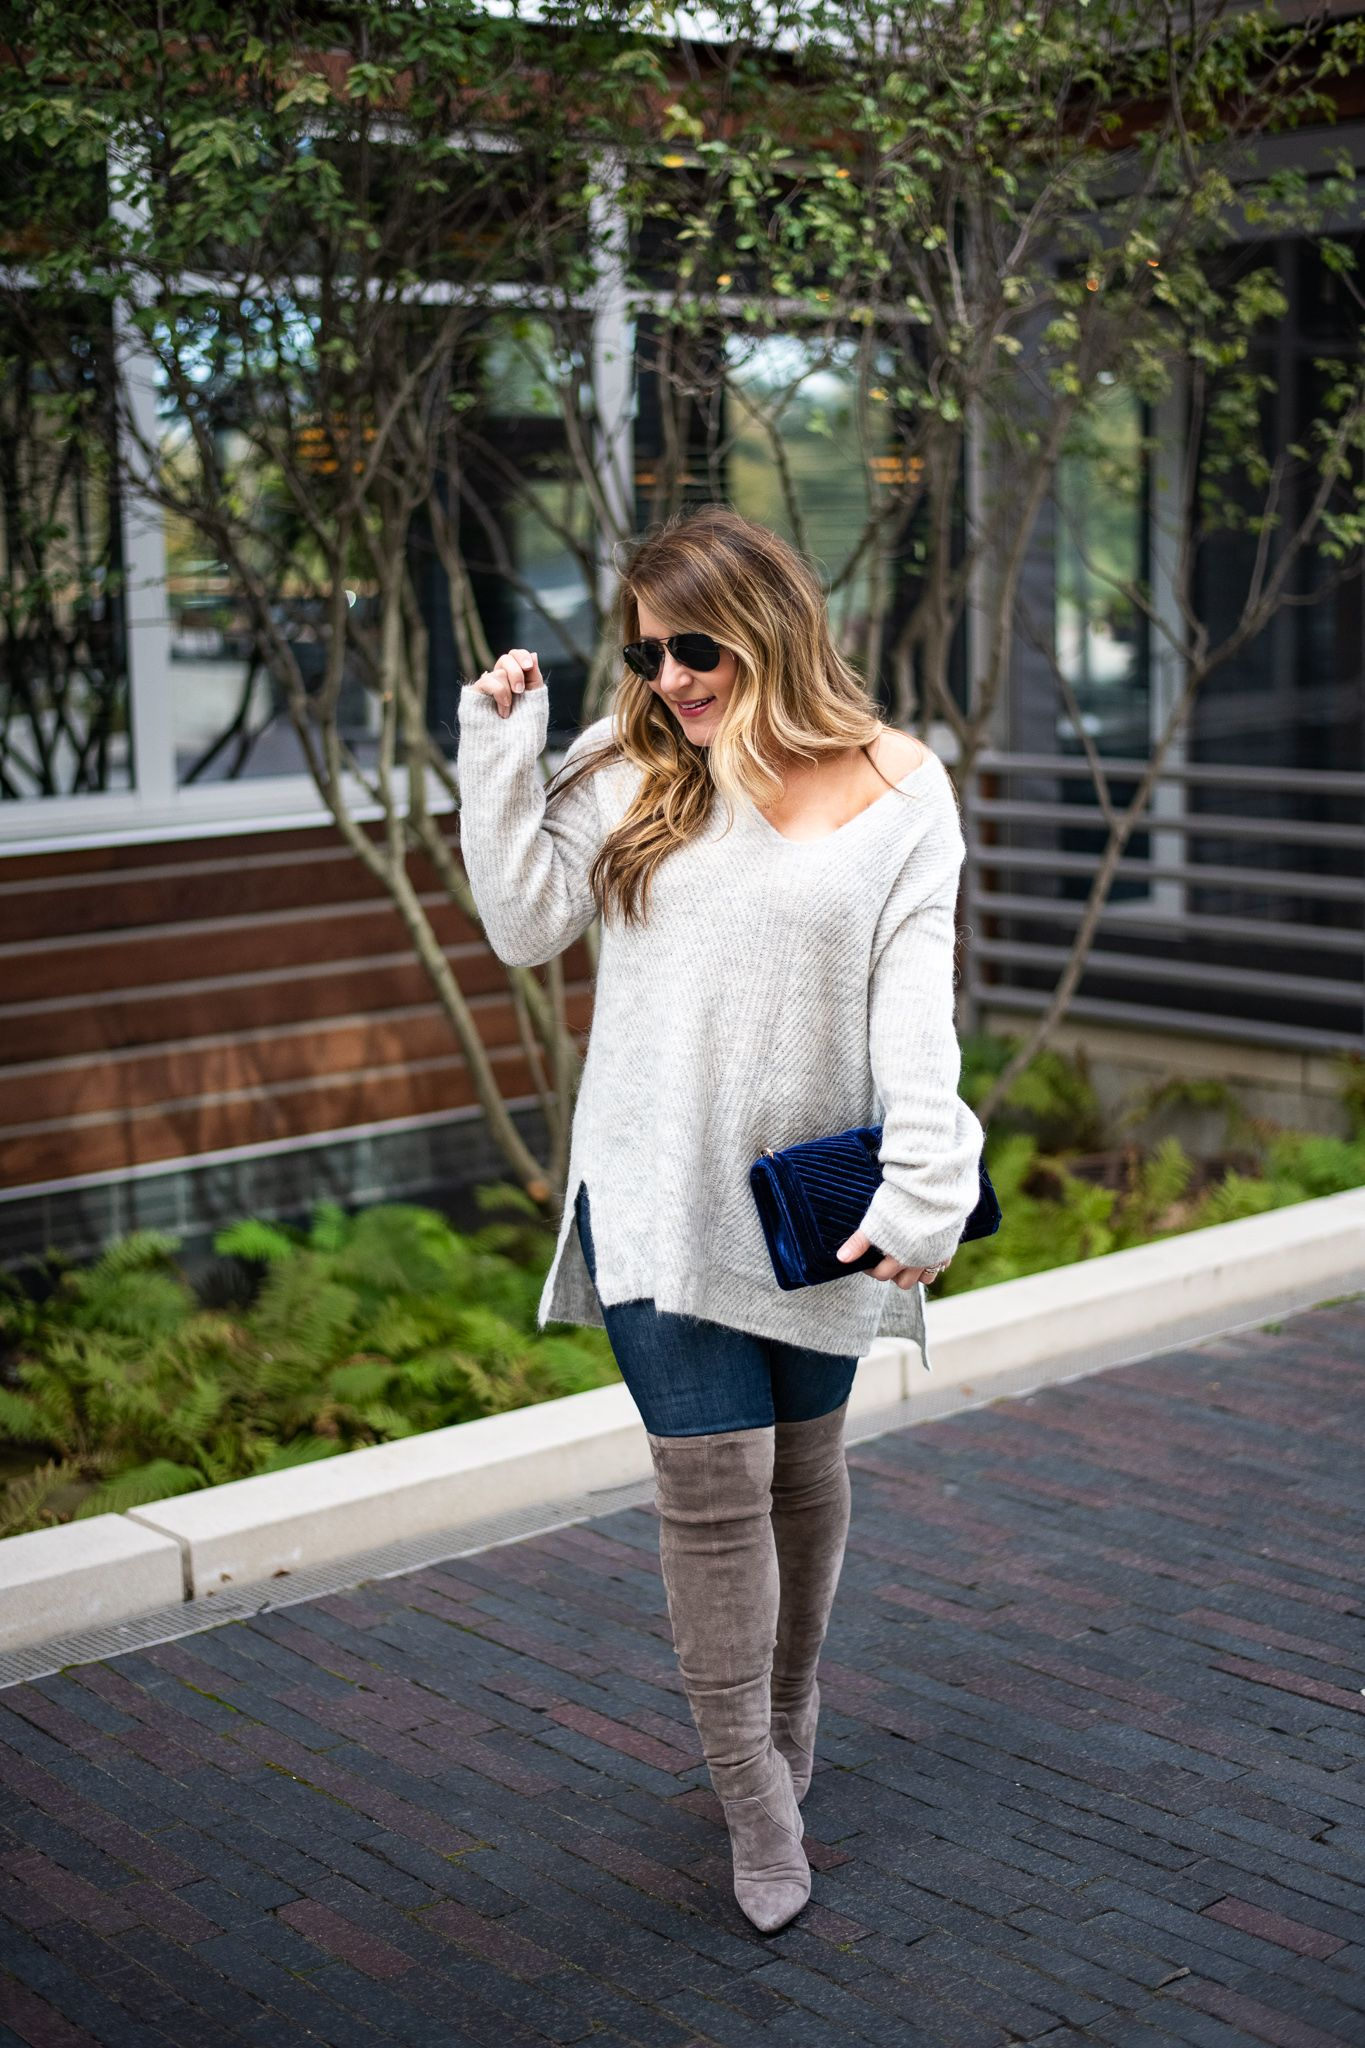 50% off outlet online skate shoes Over the Knee Boots for Thick Legs | Coffee Beans and Bobby Pins ...